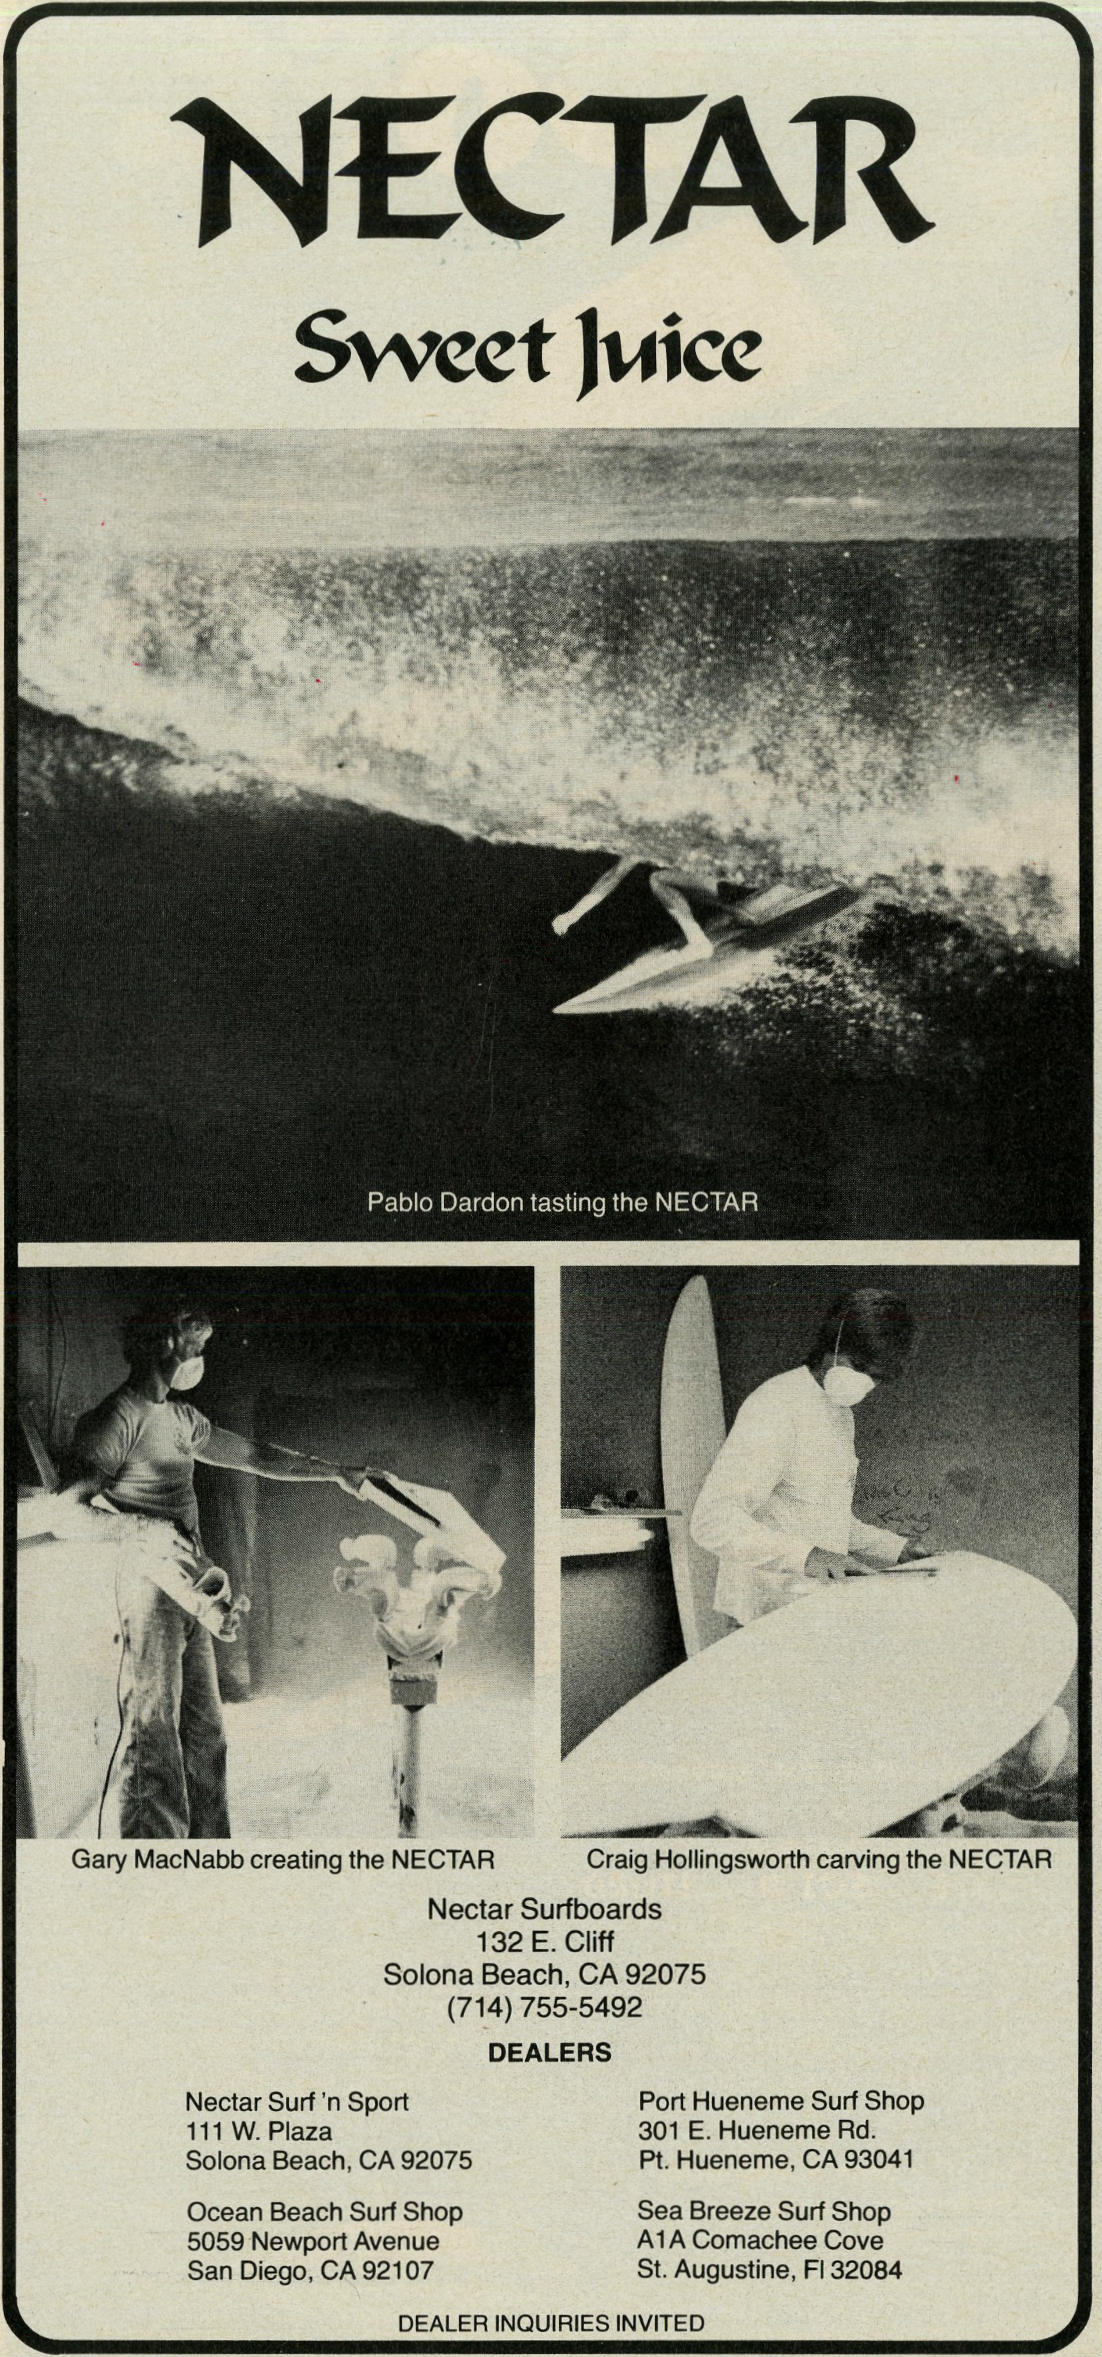 Sweet Juice via Nectar Surfboards: Sagas of Shred